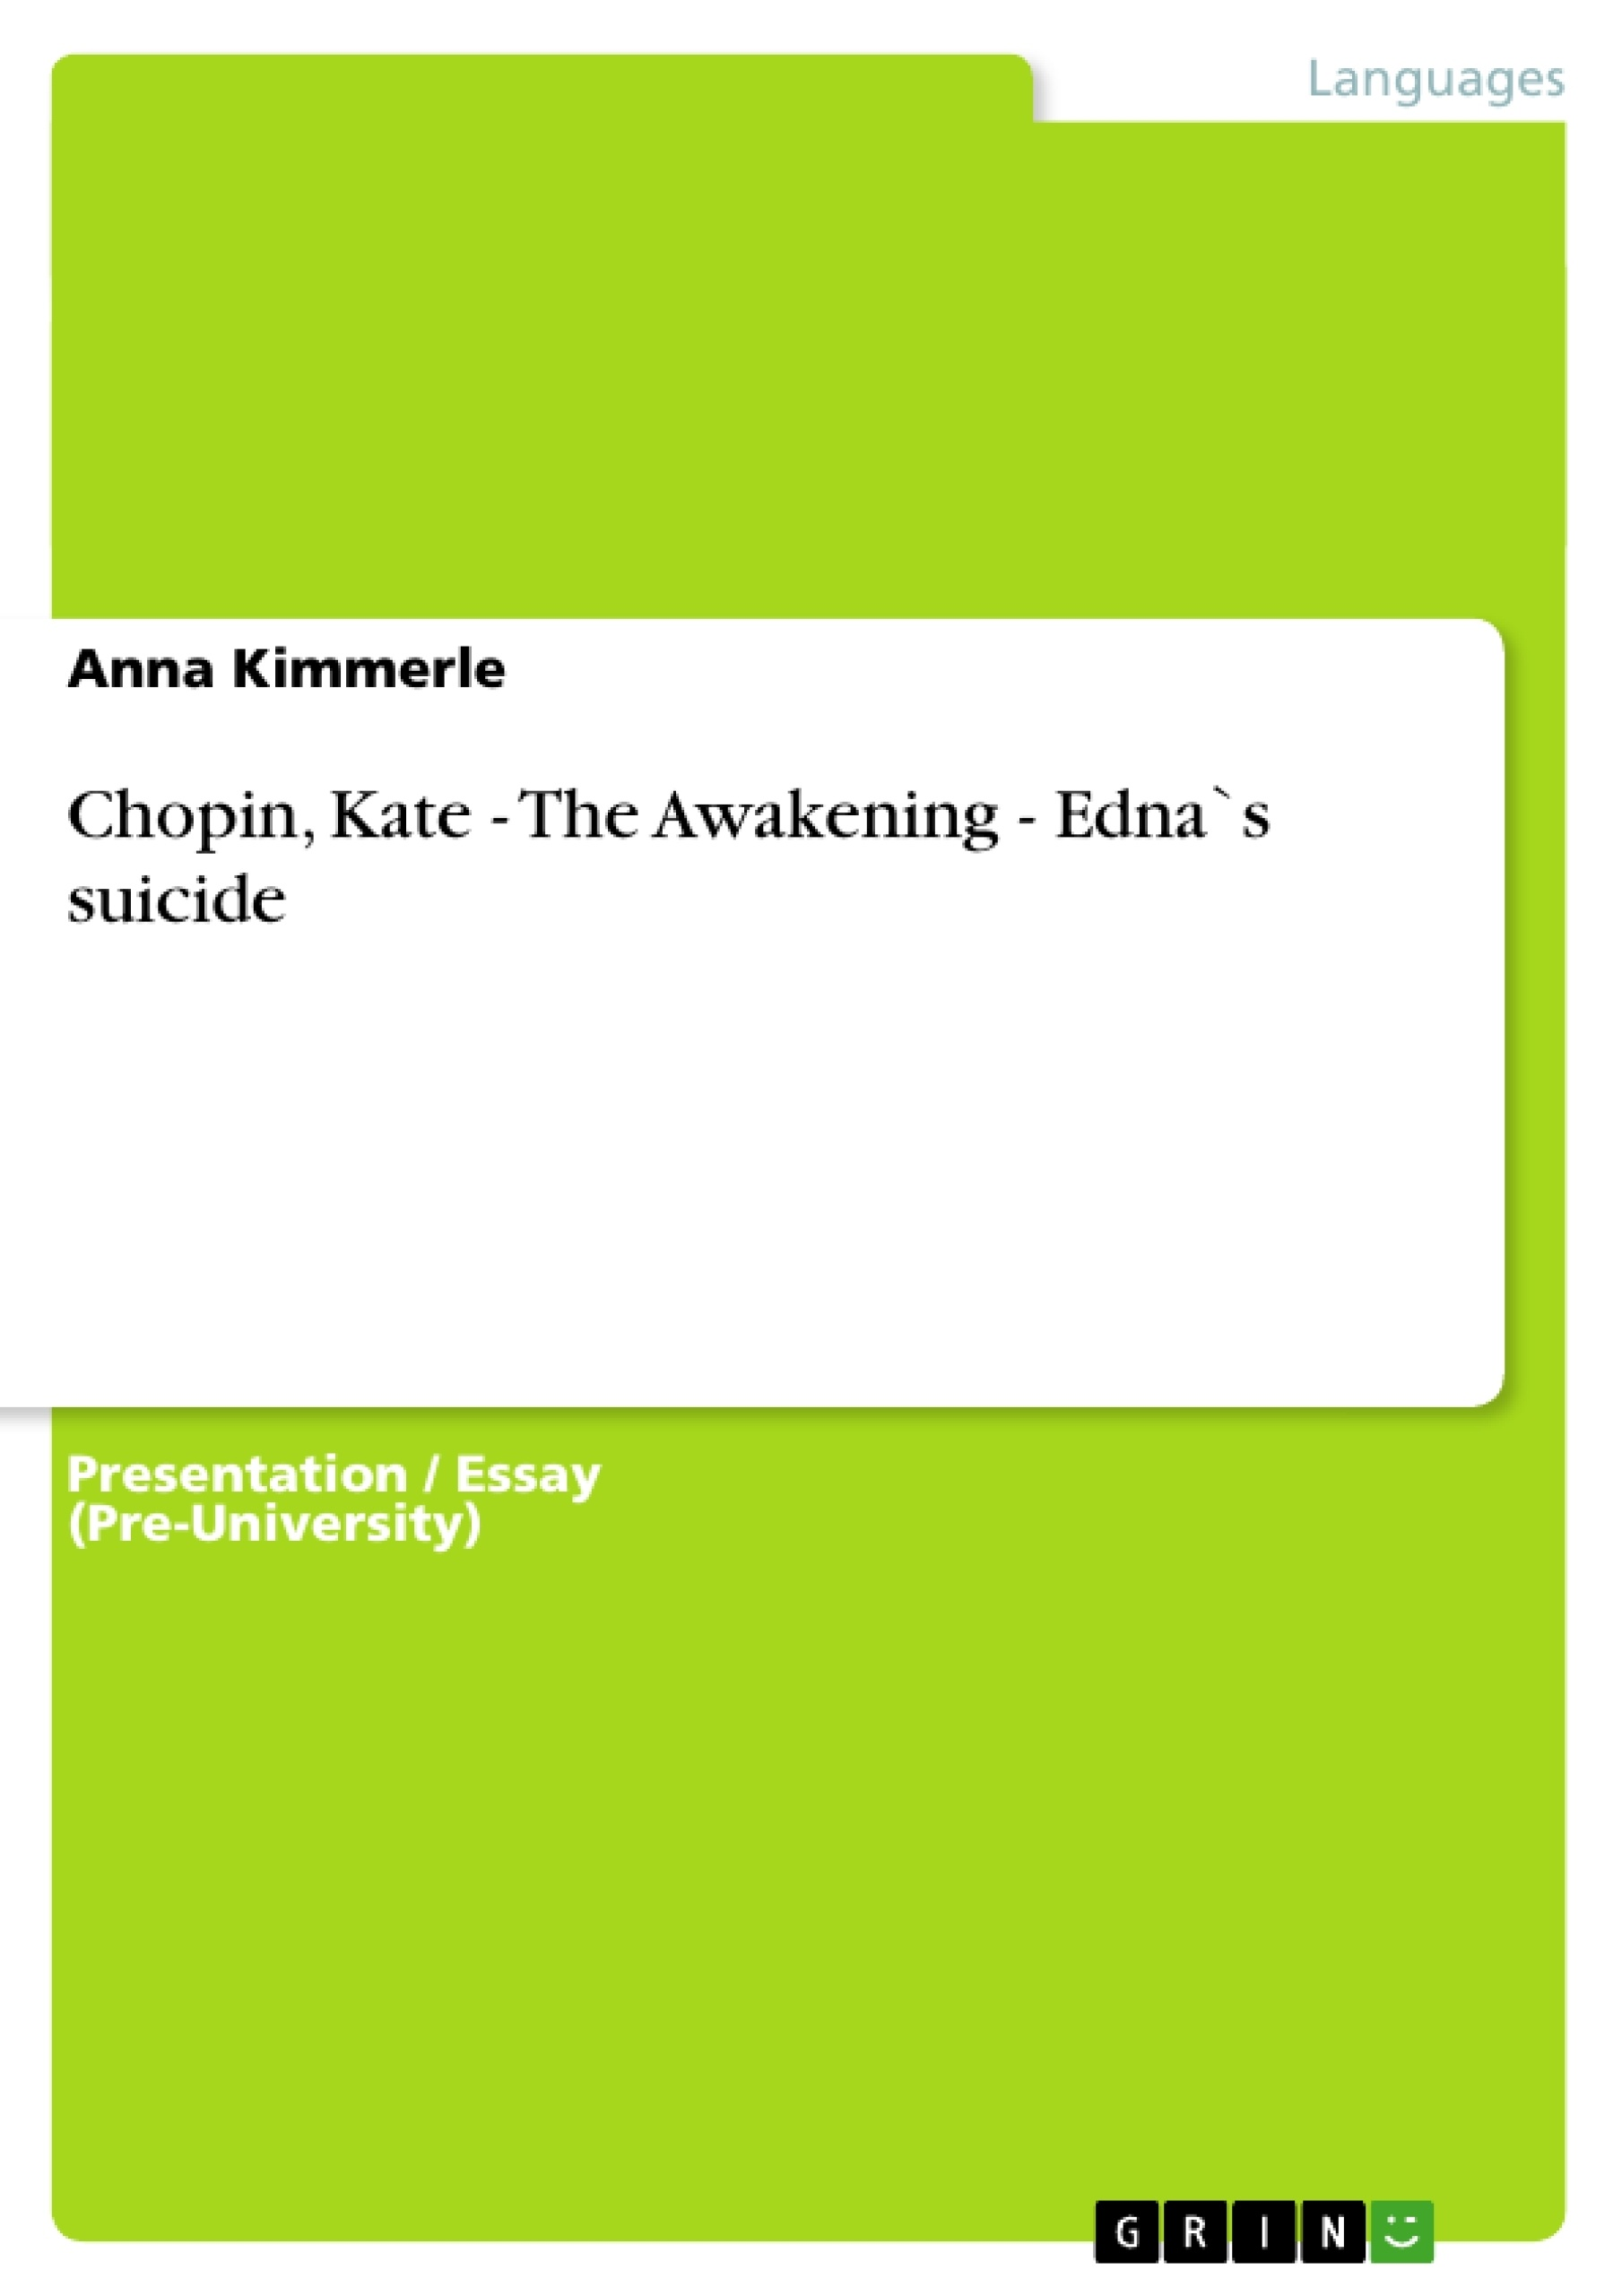 essays on the awakening hrm essay sample essay on human resource  chopin kate the awakening edna`s suicide publish your chopin kate the awakening edna`